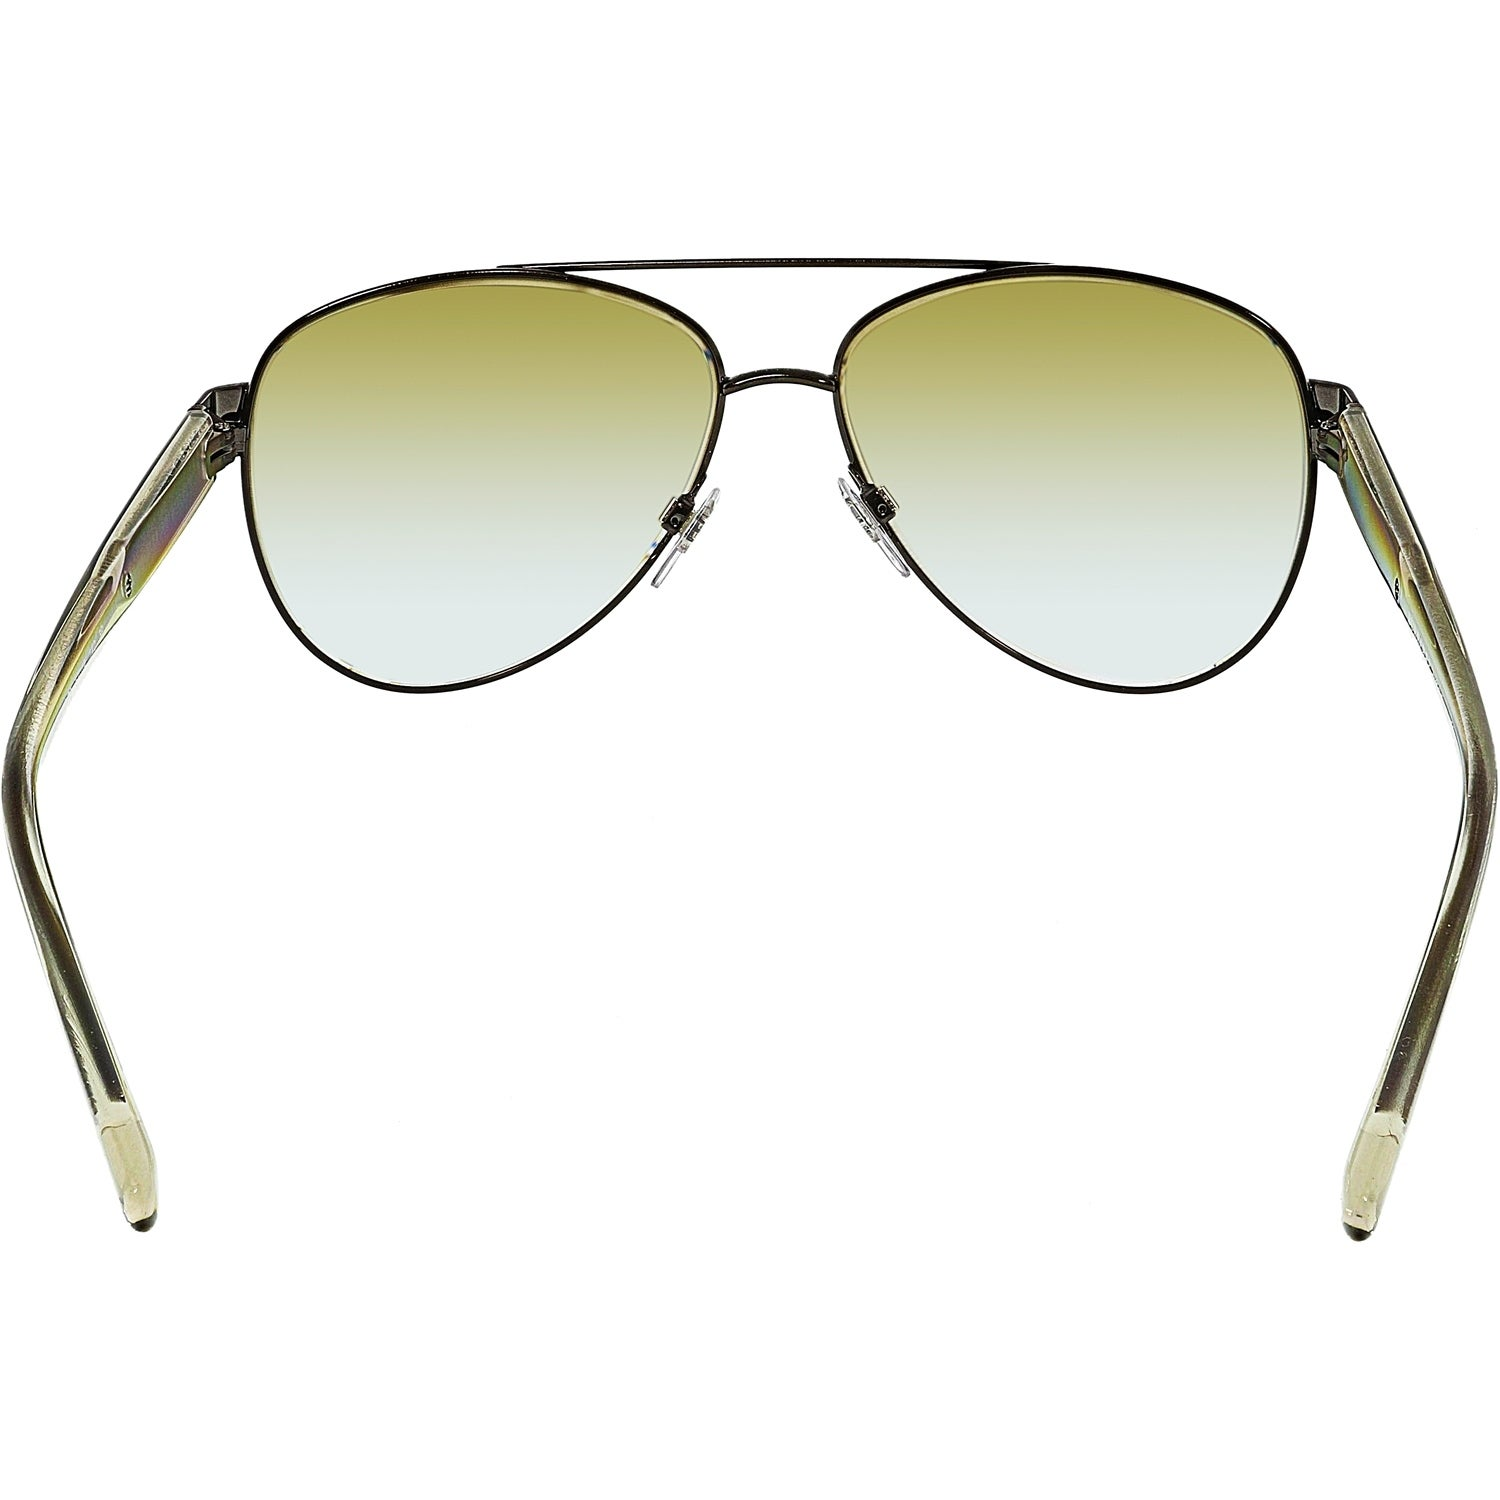 babd546cf5ce Shop Burberry Women s Polarized BE3084-1212T5-57 Brown Aviator Sunglasses -  Free Shipping Today - Overstock.com - 18900155